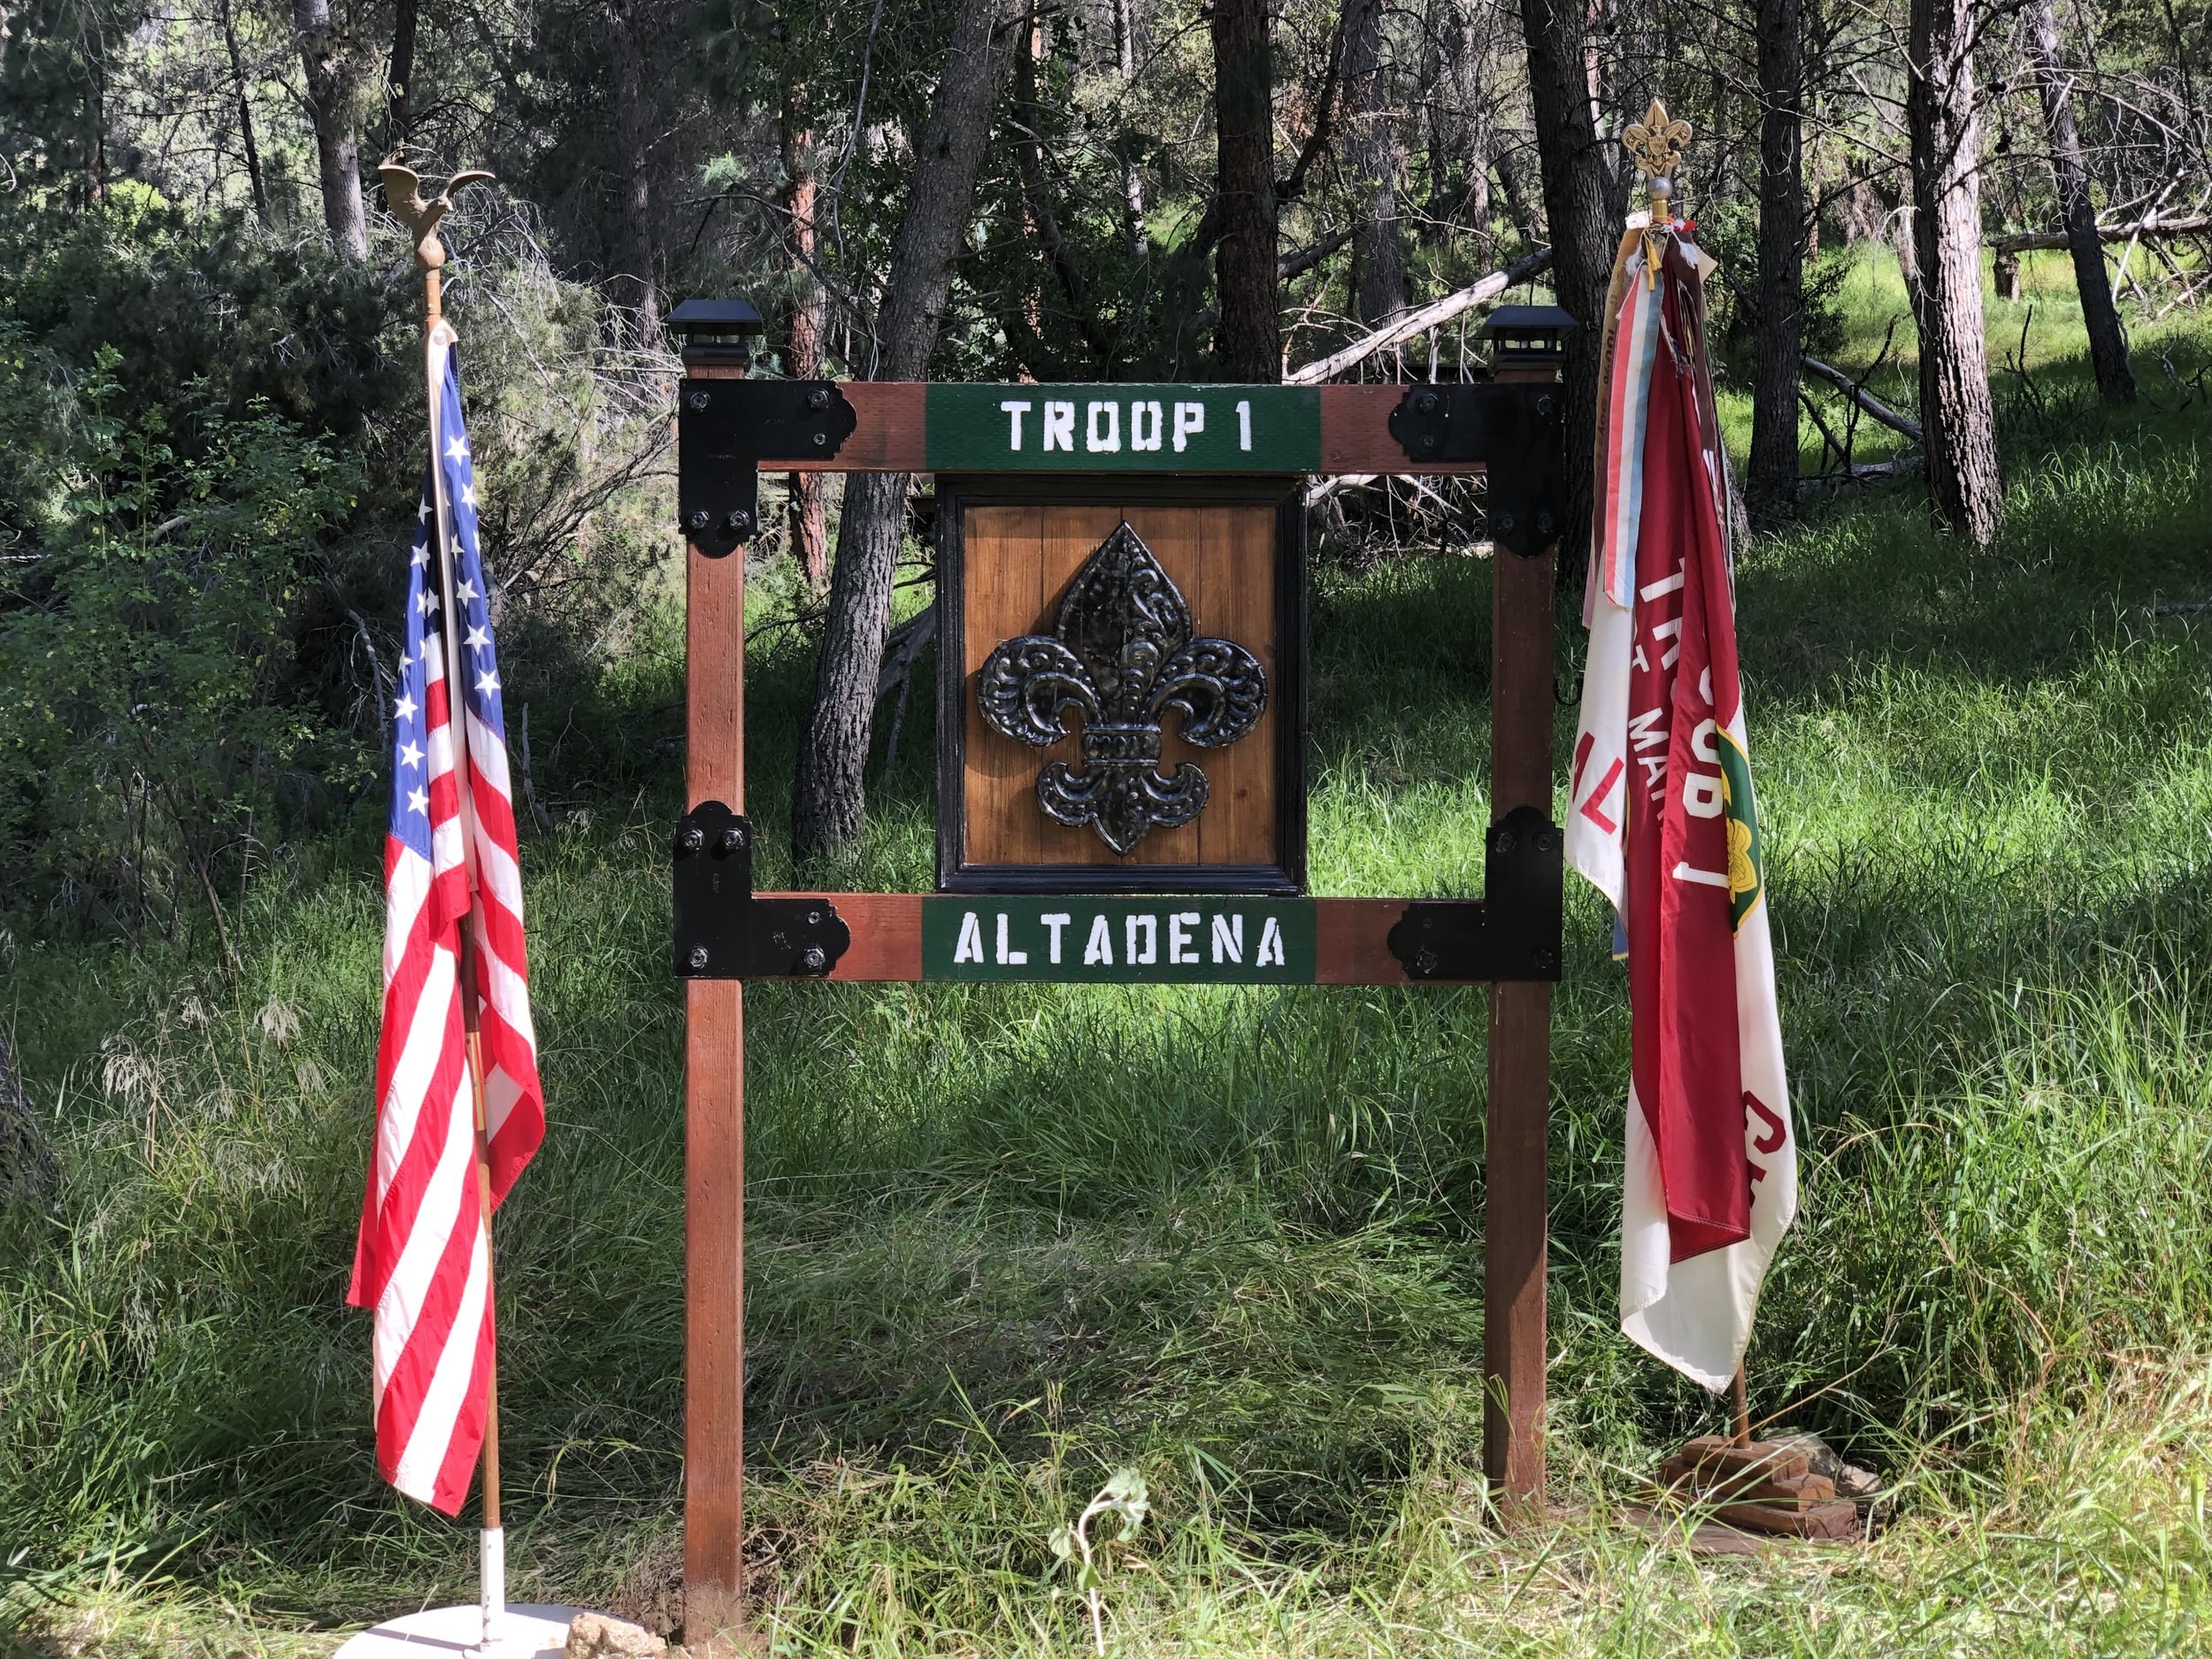 A new Troop 1 sign was assembled and installed to mark Troop 1's new area at Camp Trask following several weeks of effort. The Troop also received a Camporee award for most improved camp area!